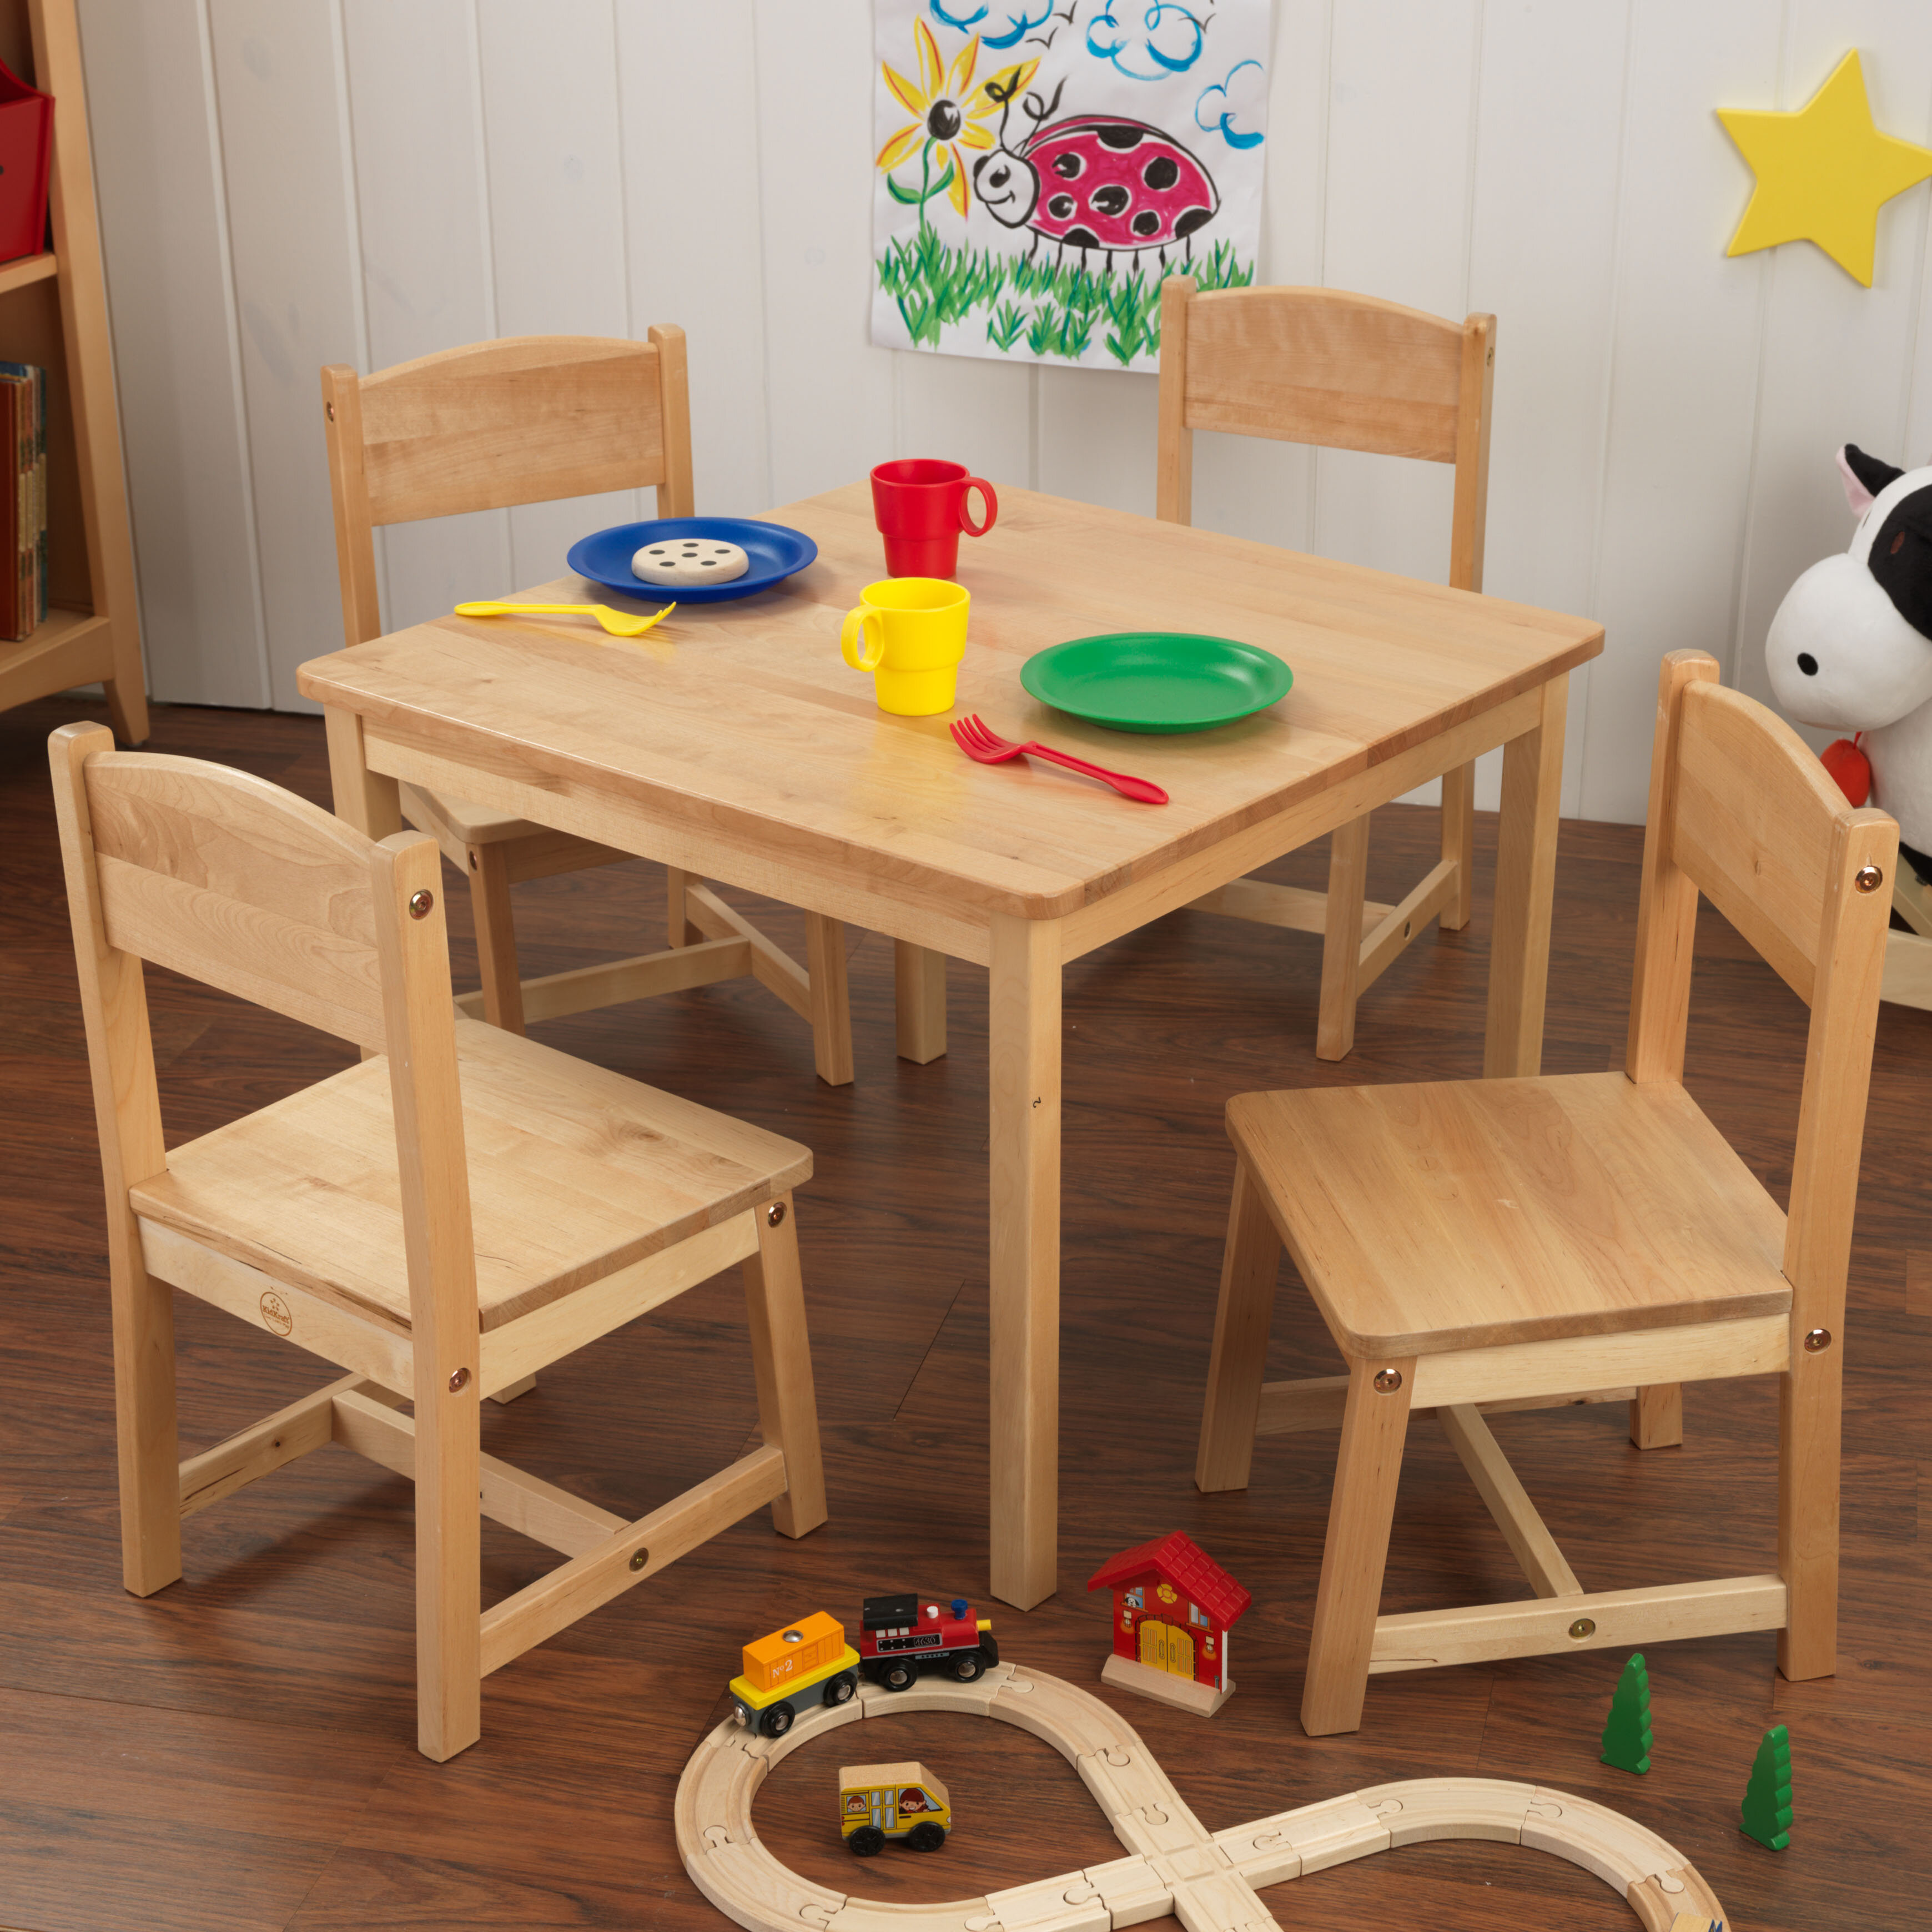 Pleasing Kidkraft Farmhouse Kids 5 Piece Writing Table And Chair Set Bralicious Painted Fabric Chair Ideas Braliciousco